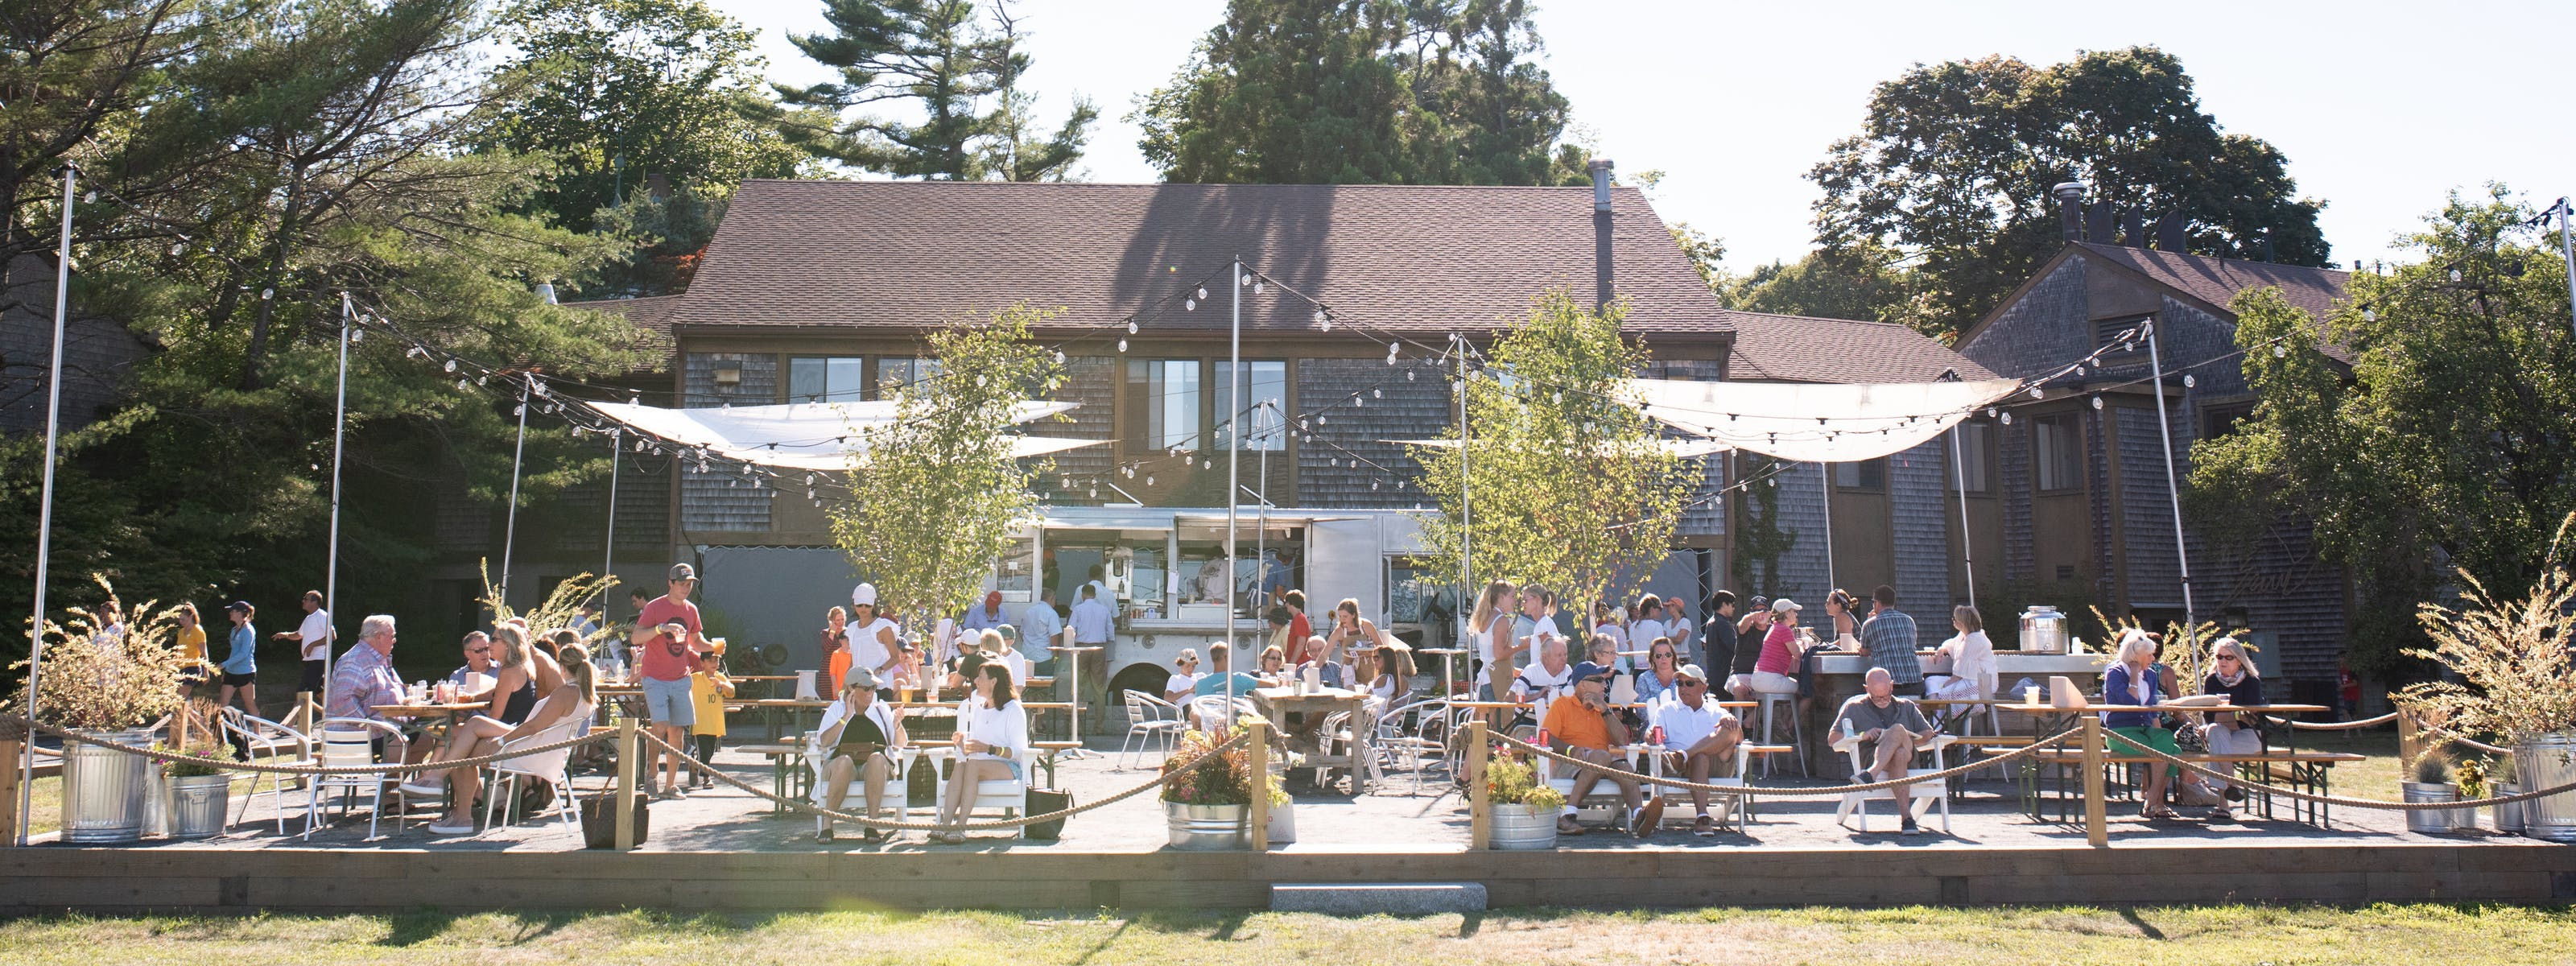 7 Restaurants Perfect For A Day Trip Outside Boston - Boston - The Infatuation